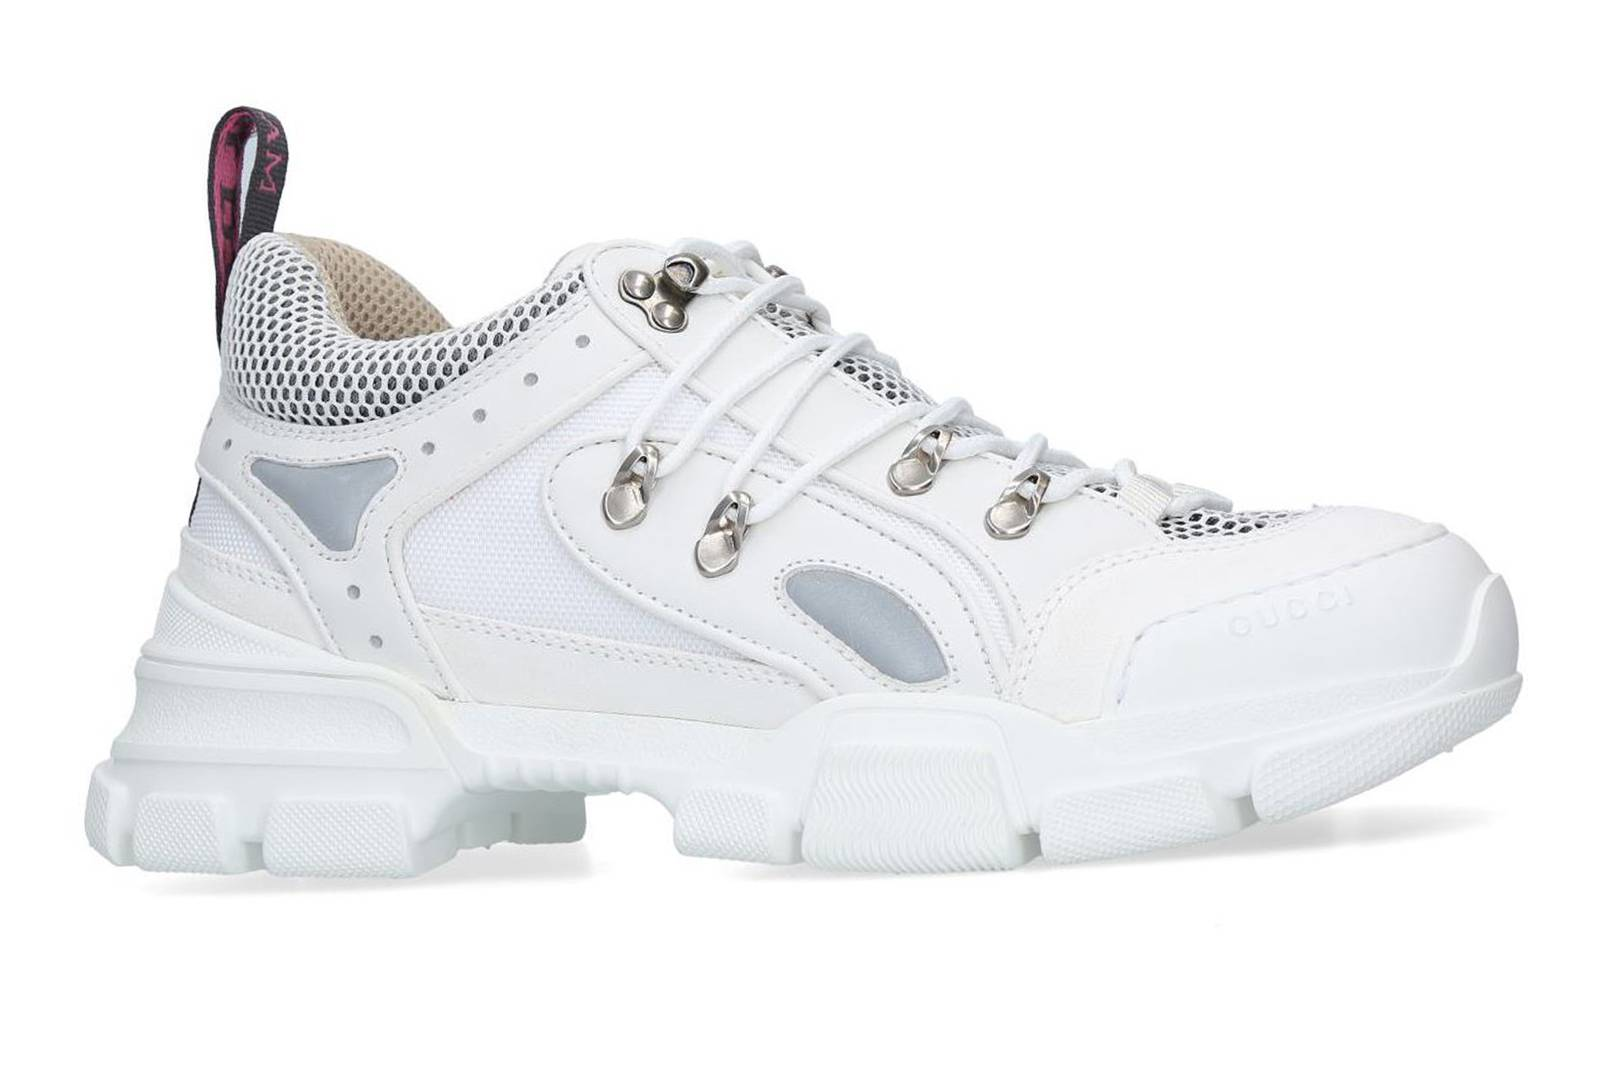 7e2c3ee325a Best white trainers for men